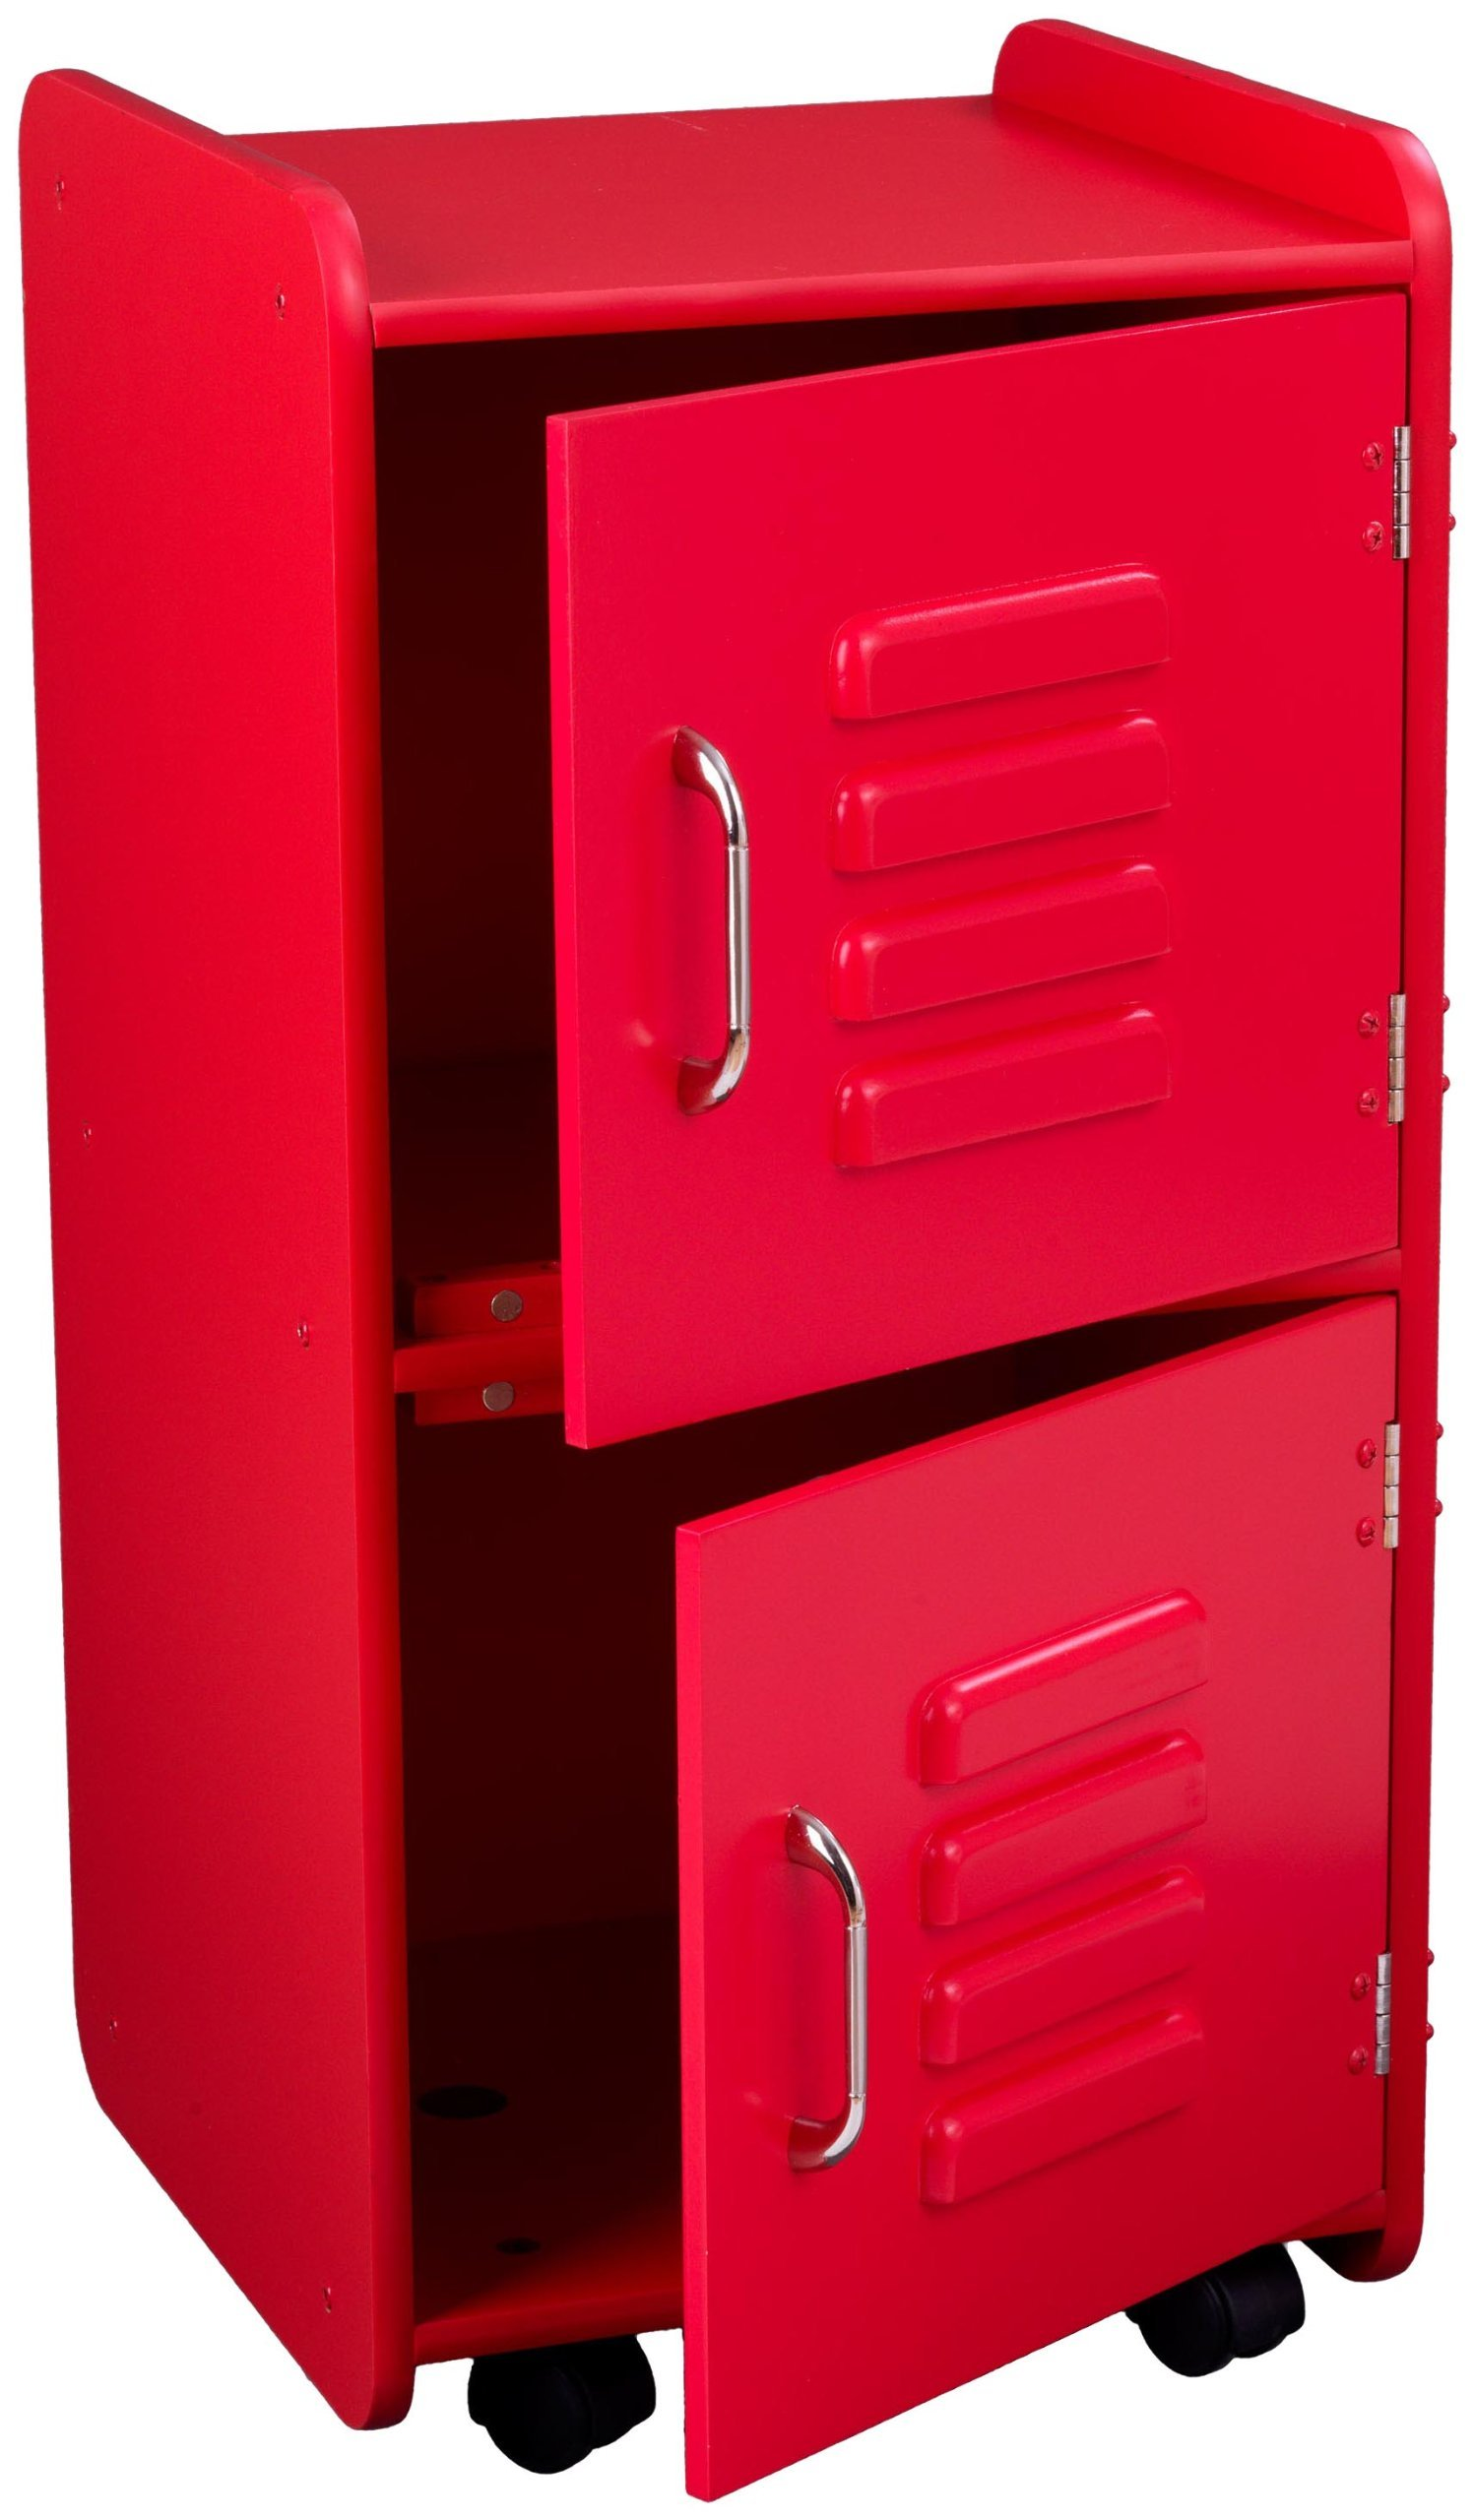 KidKraft Painted Wood Medium Storage Locker On Wheels with Two Compartments - Red by KidKraft